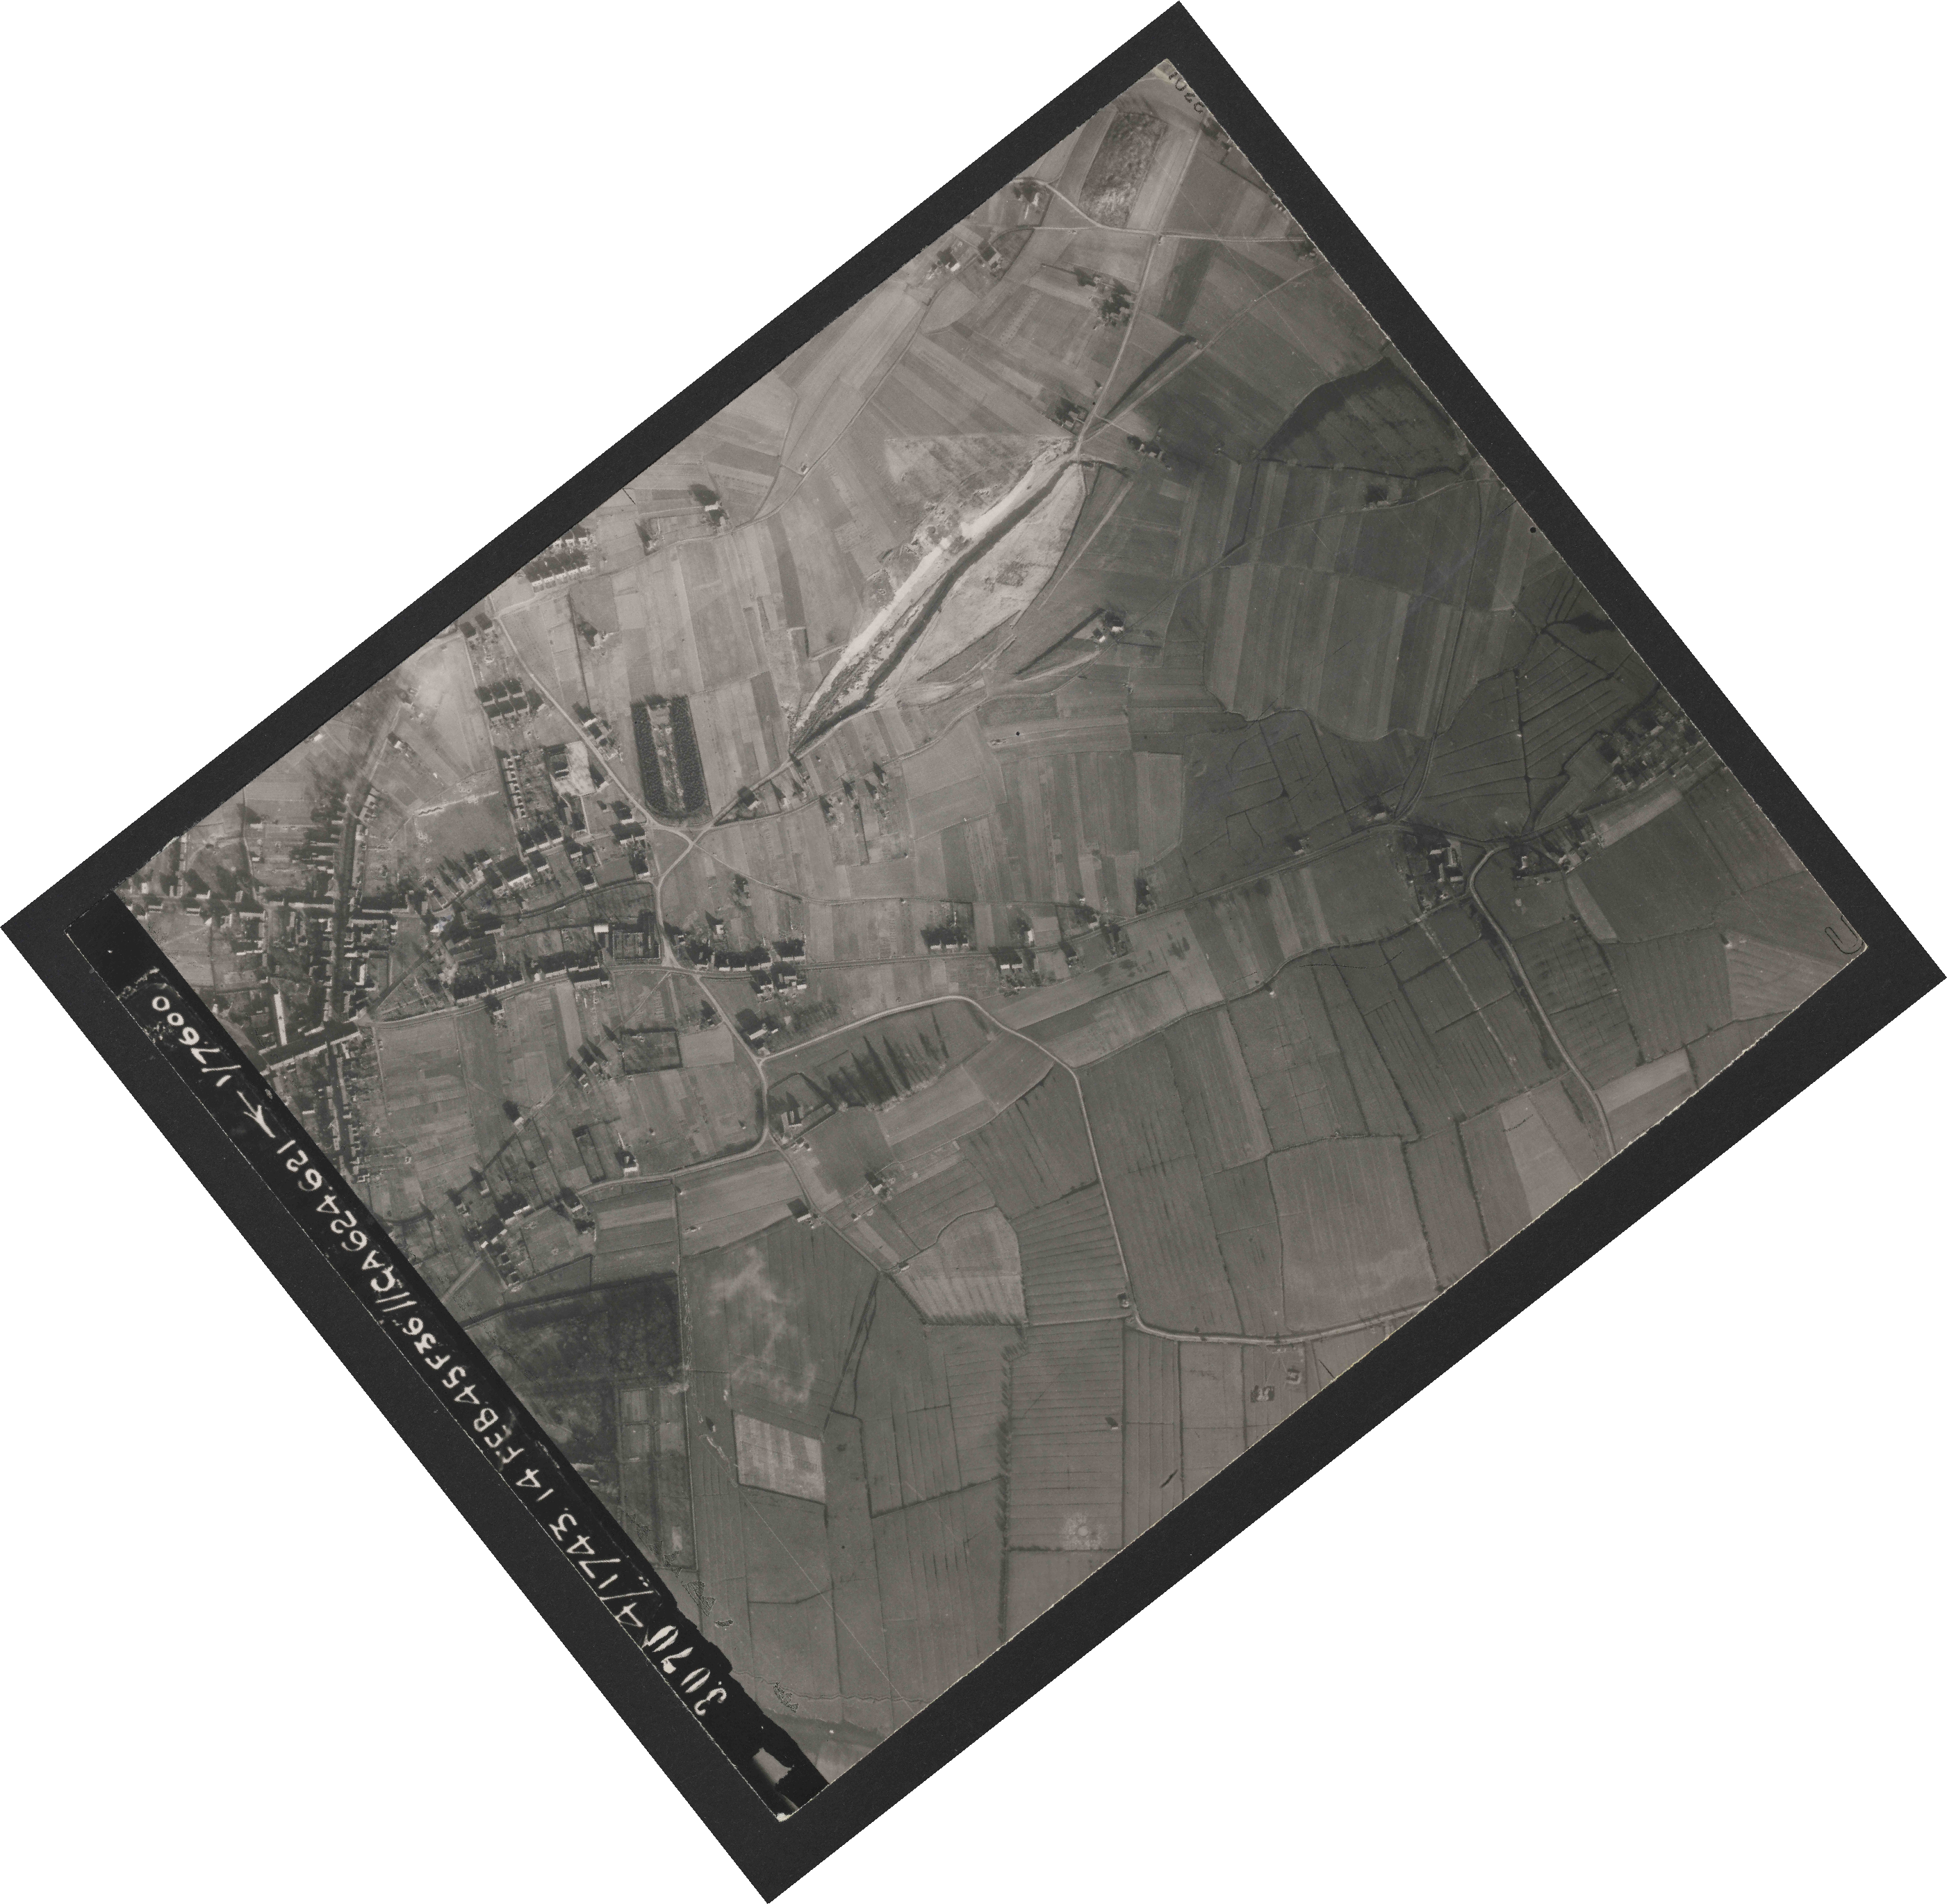 Collection RAF aerial photos 1940-1945 - flight 323, run 04, photo 3070